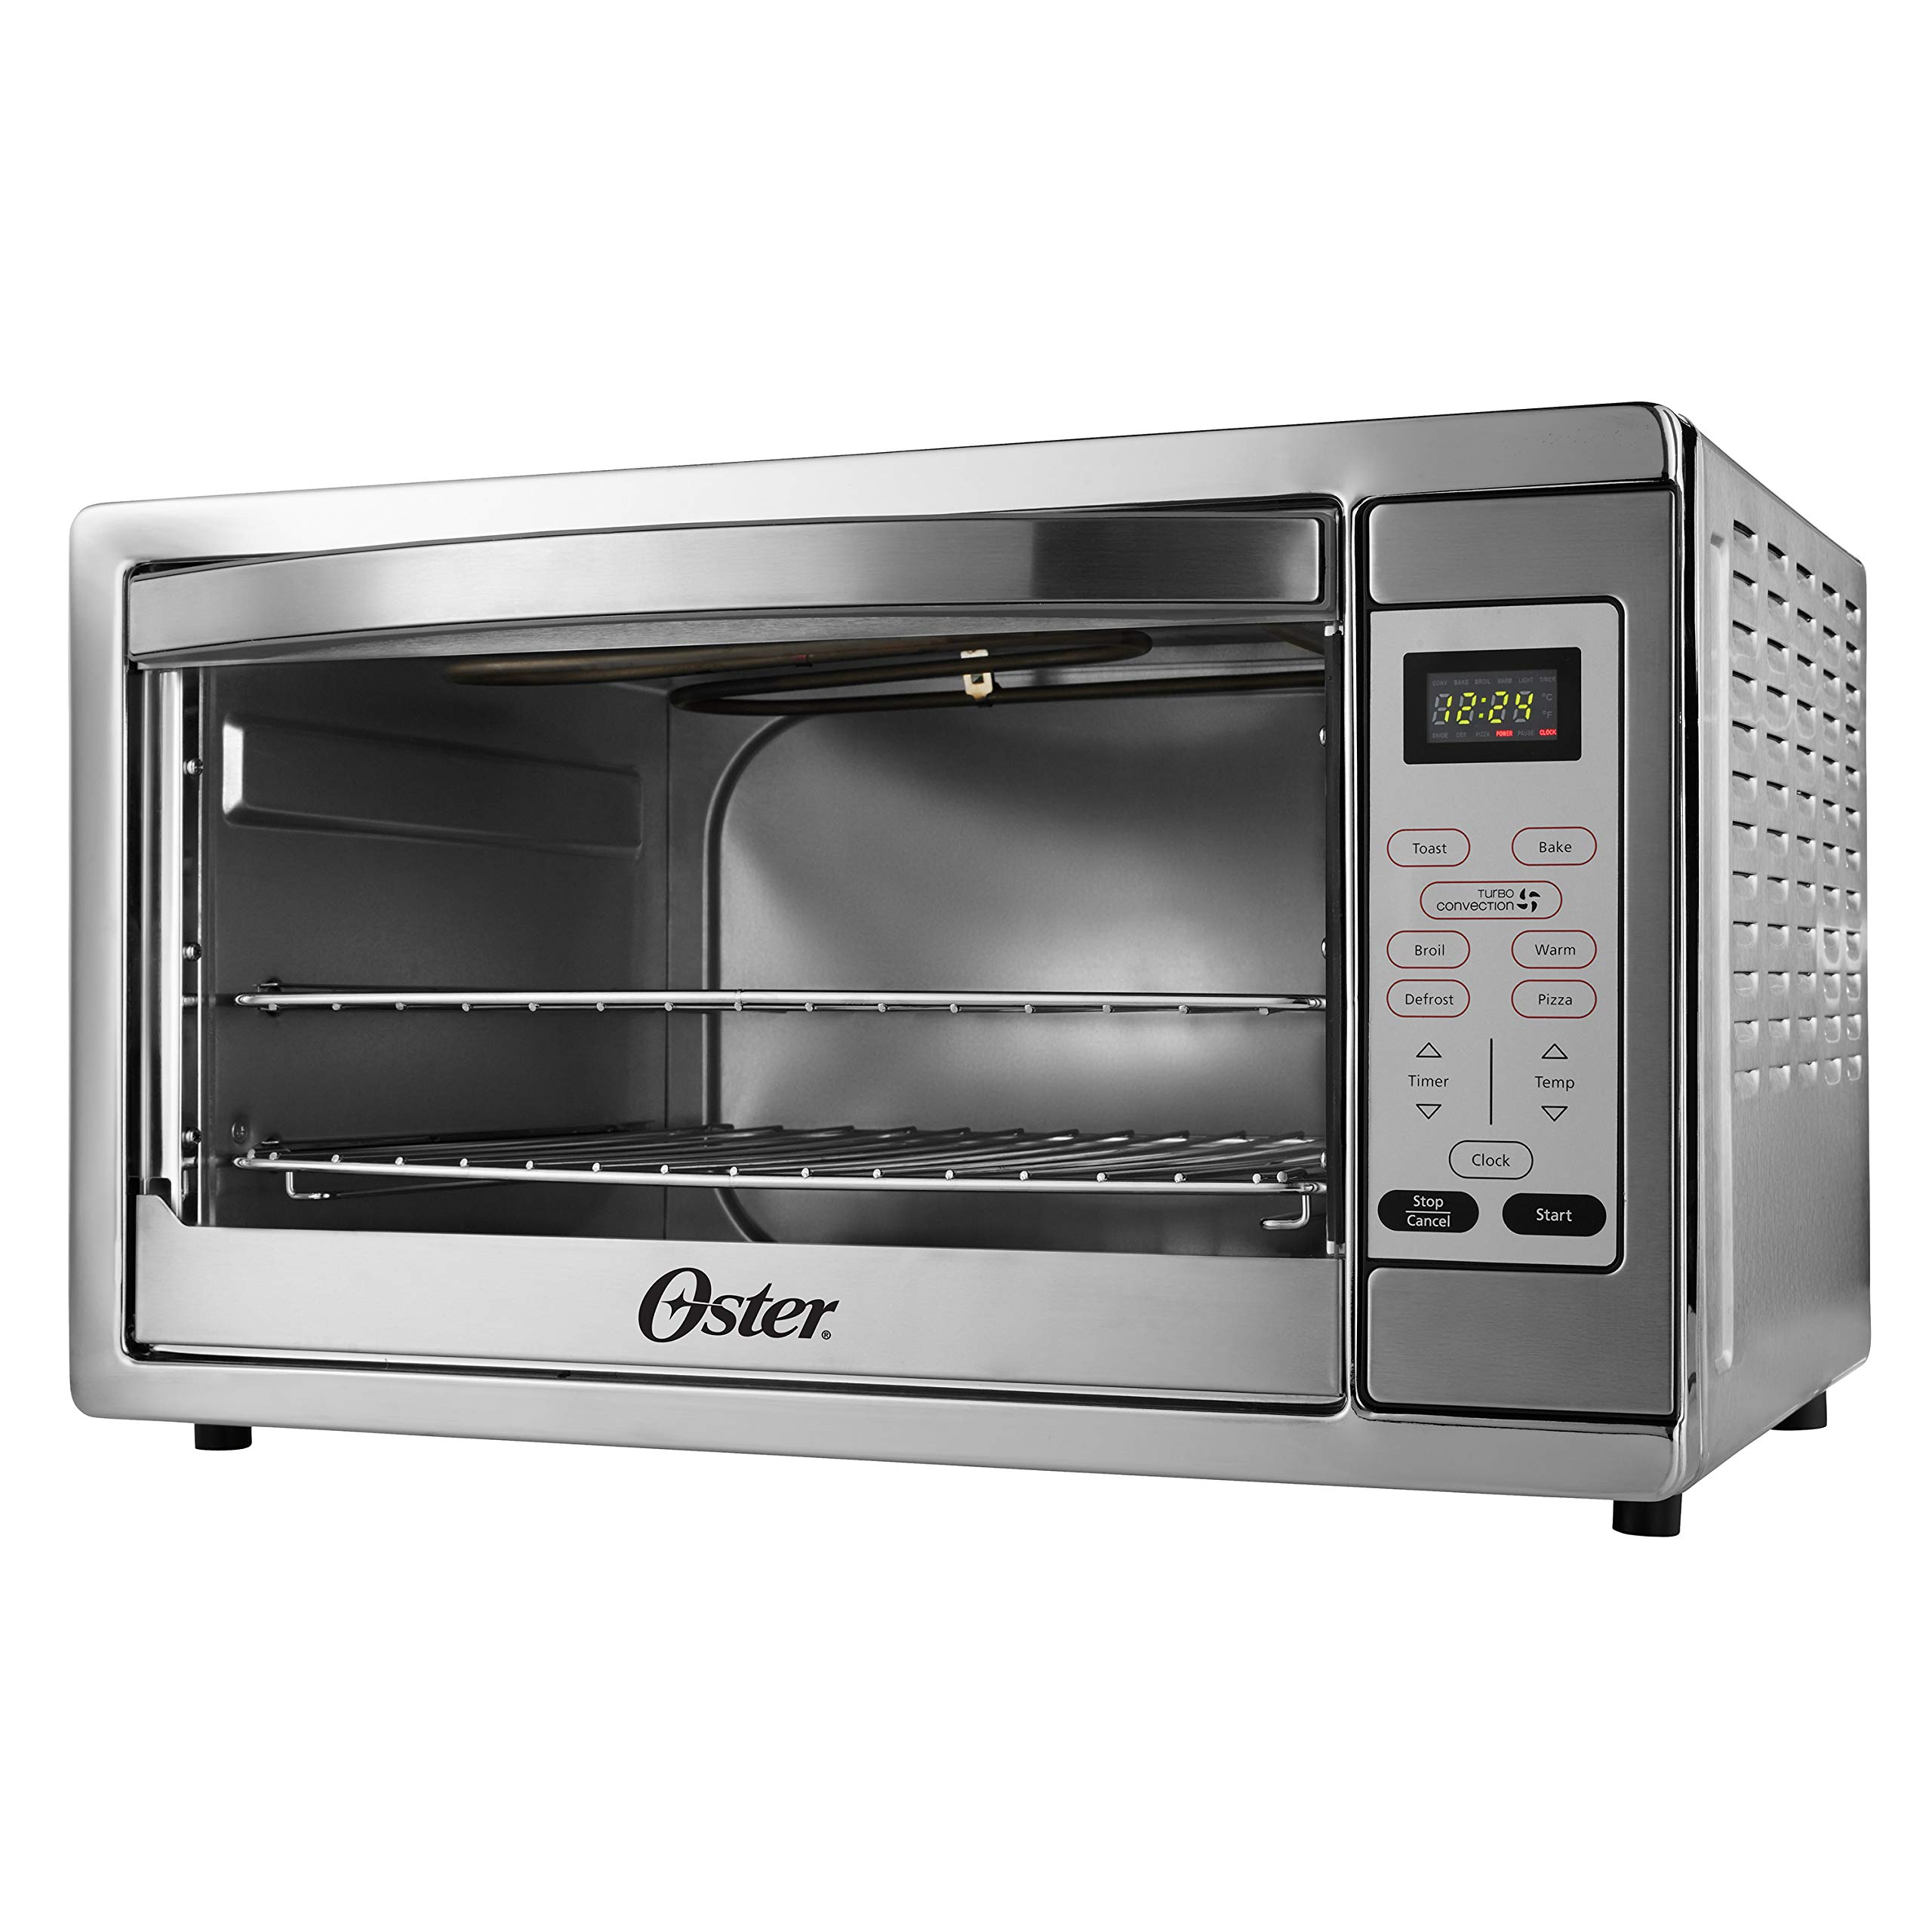 Oster Extra Large Digital Countertop Convection Oven, Stainless Steel (TSSTTVDGXL-SHP) by Oster